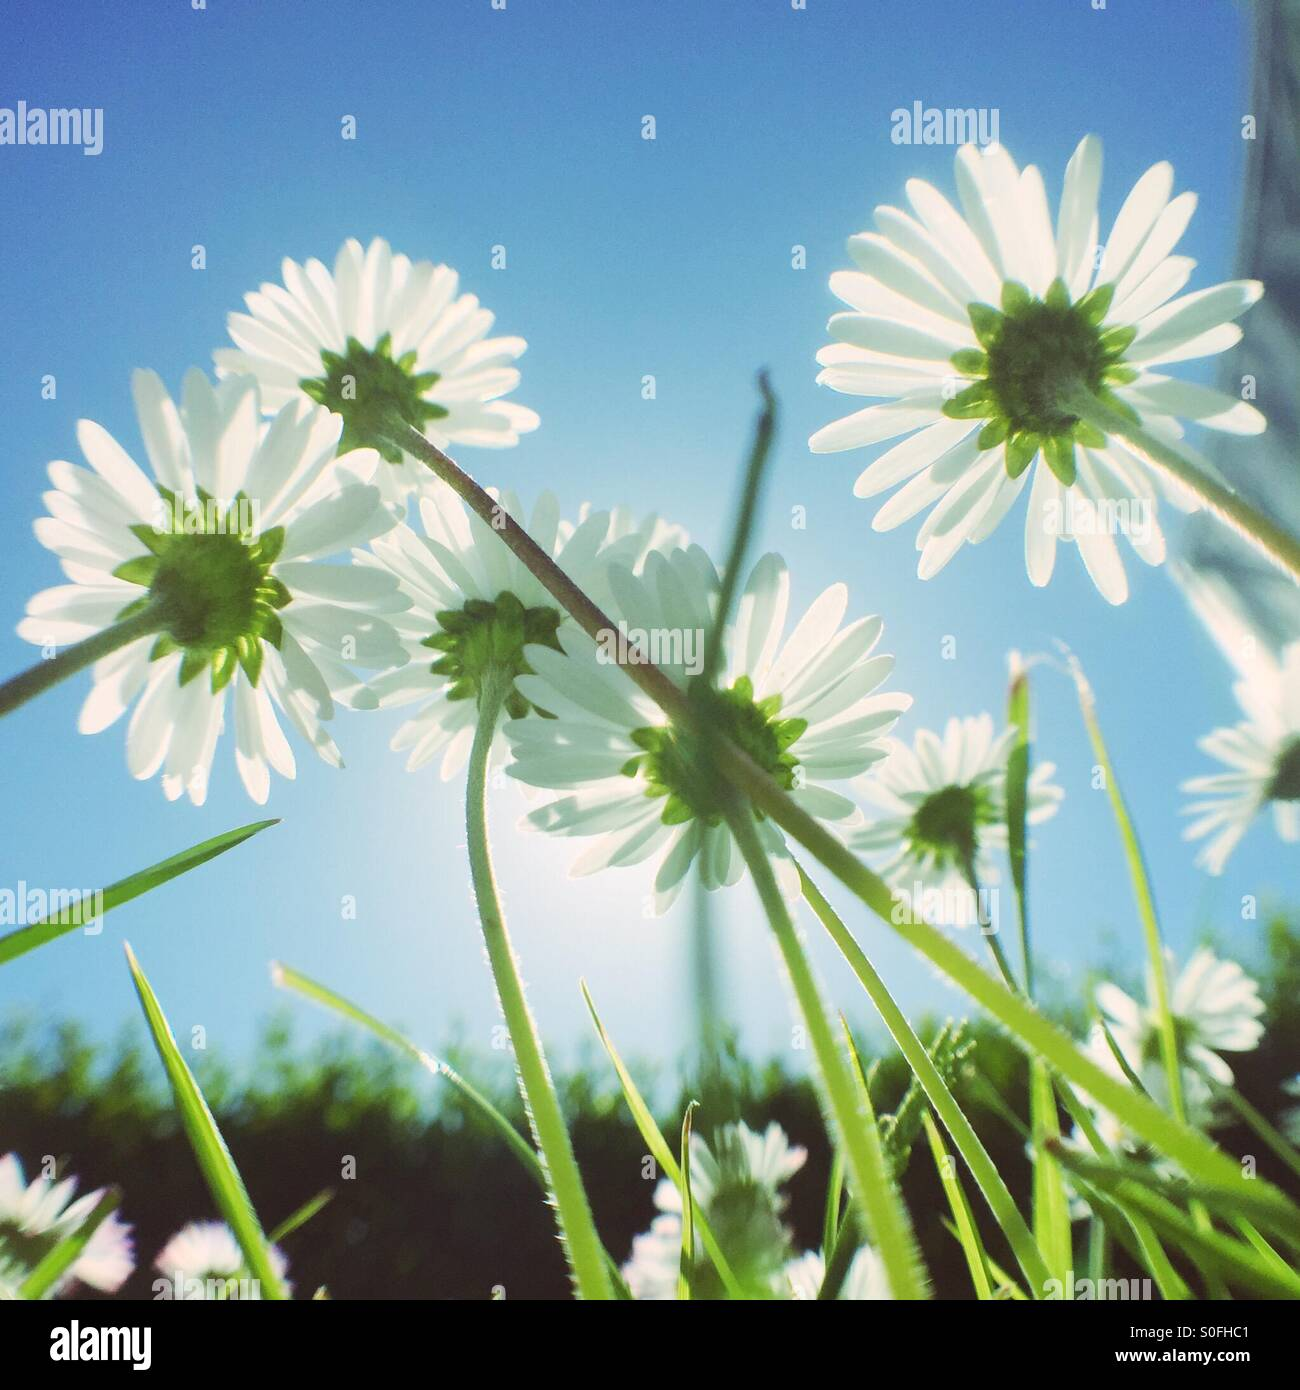 Daisy flowers growing - Stock Image